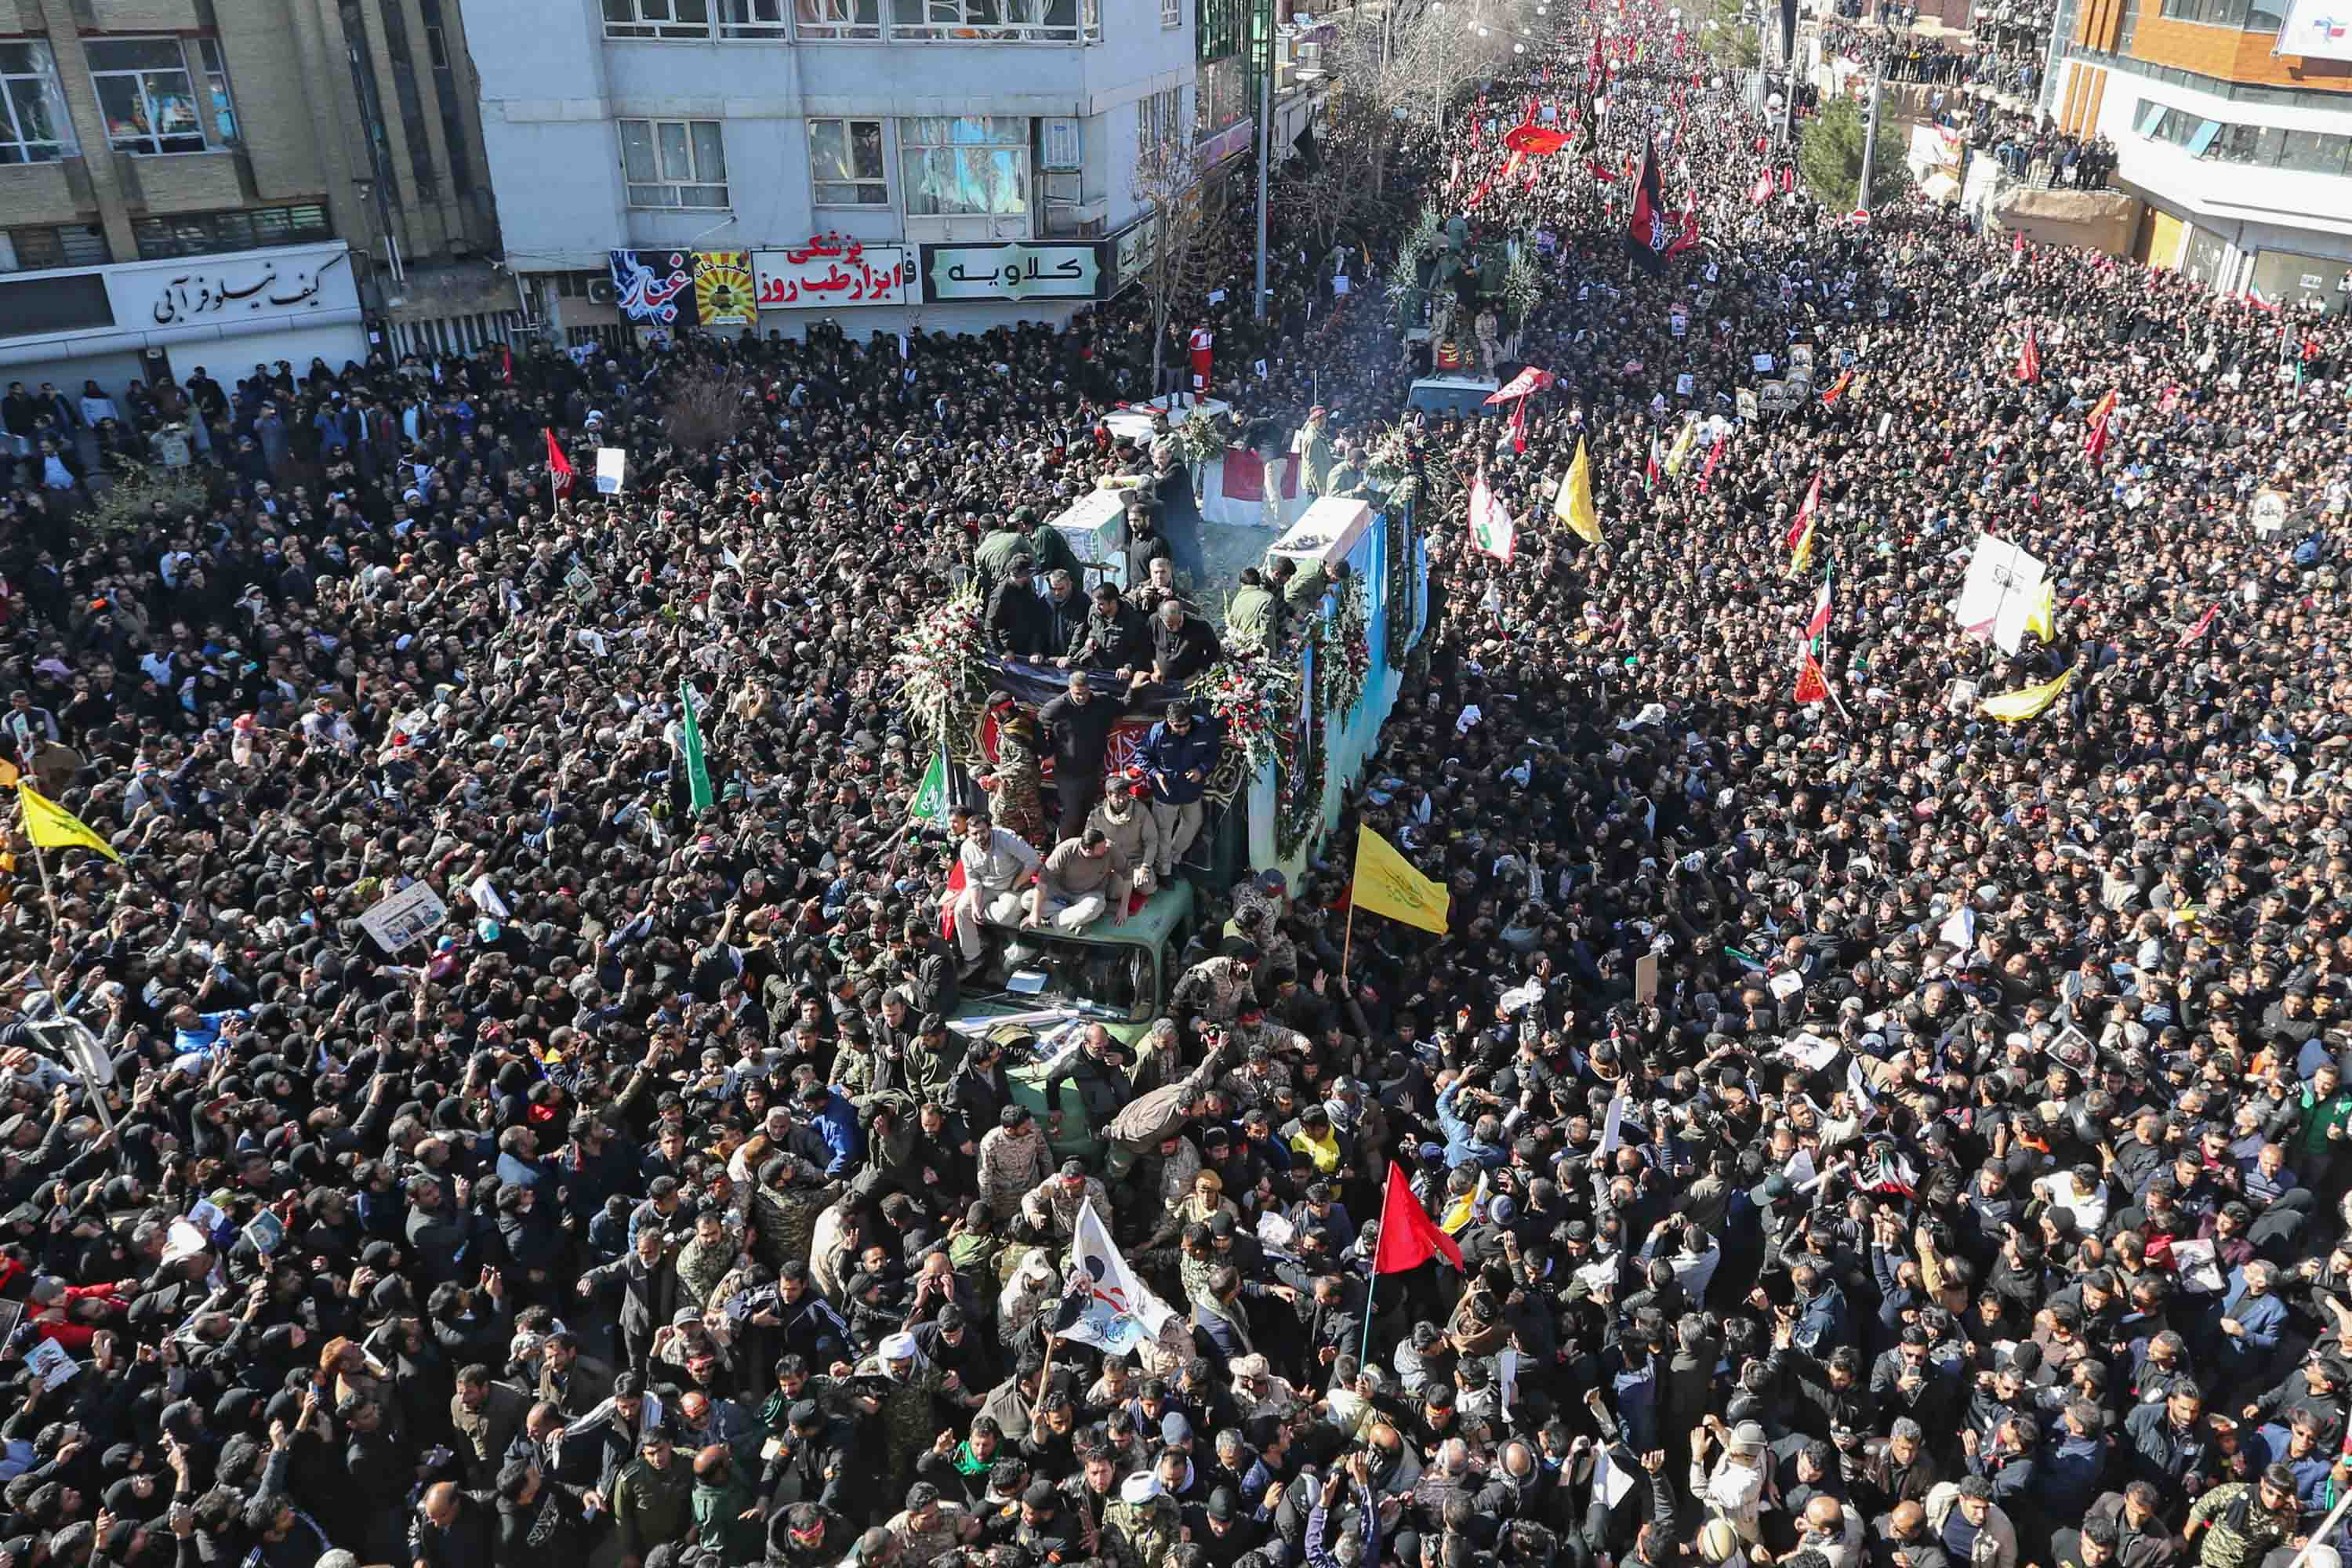 Iranian mourners gather around a vehicle carrying the coffin of Qasem Soleimani during his funeral procession in Kerman, Iran on Tuesday. Credit: Atta Kenare/AFP via Getty Images